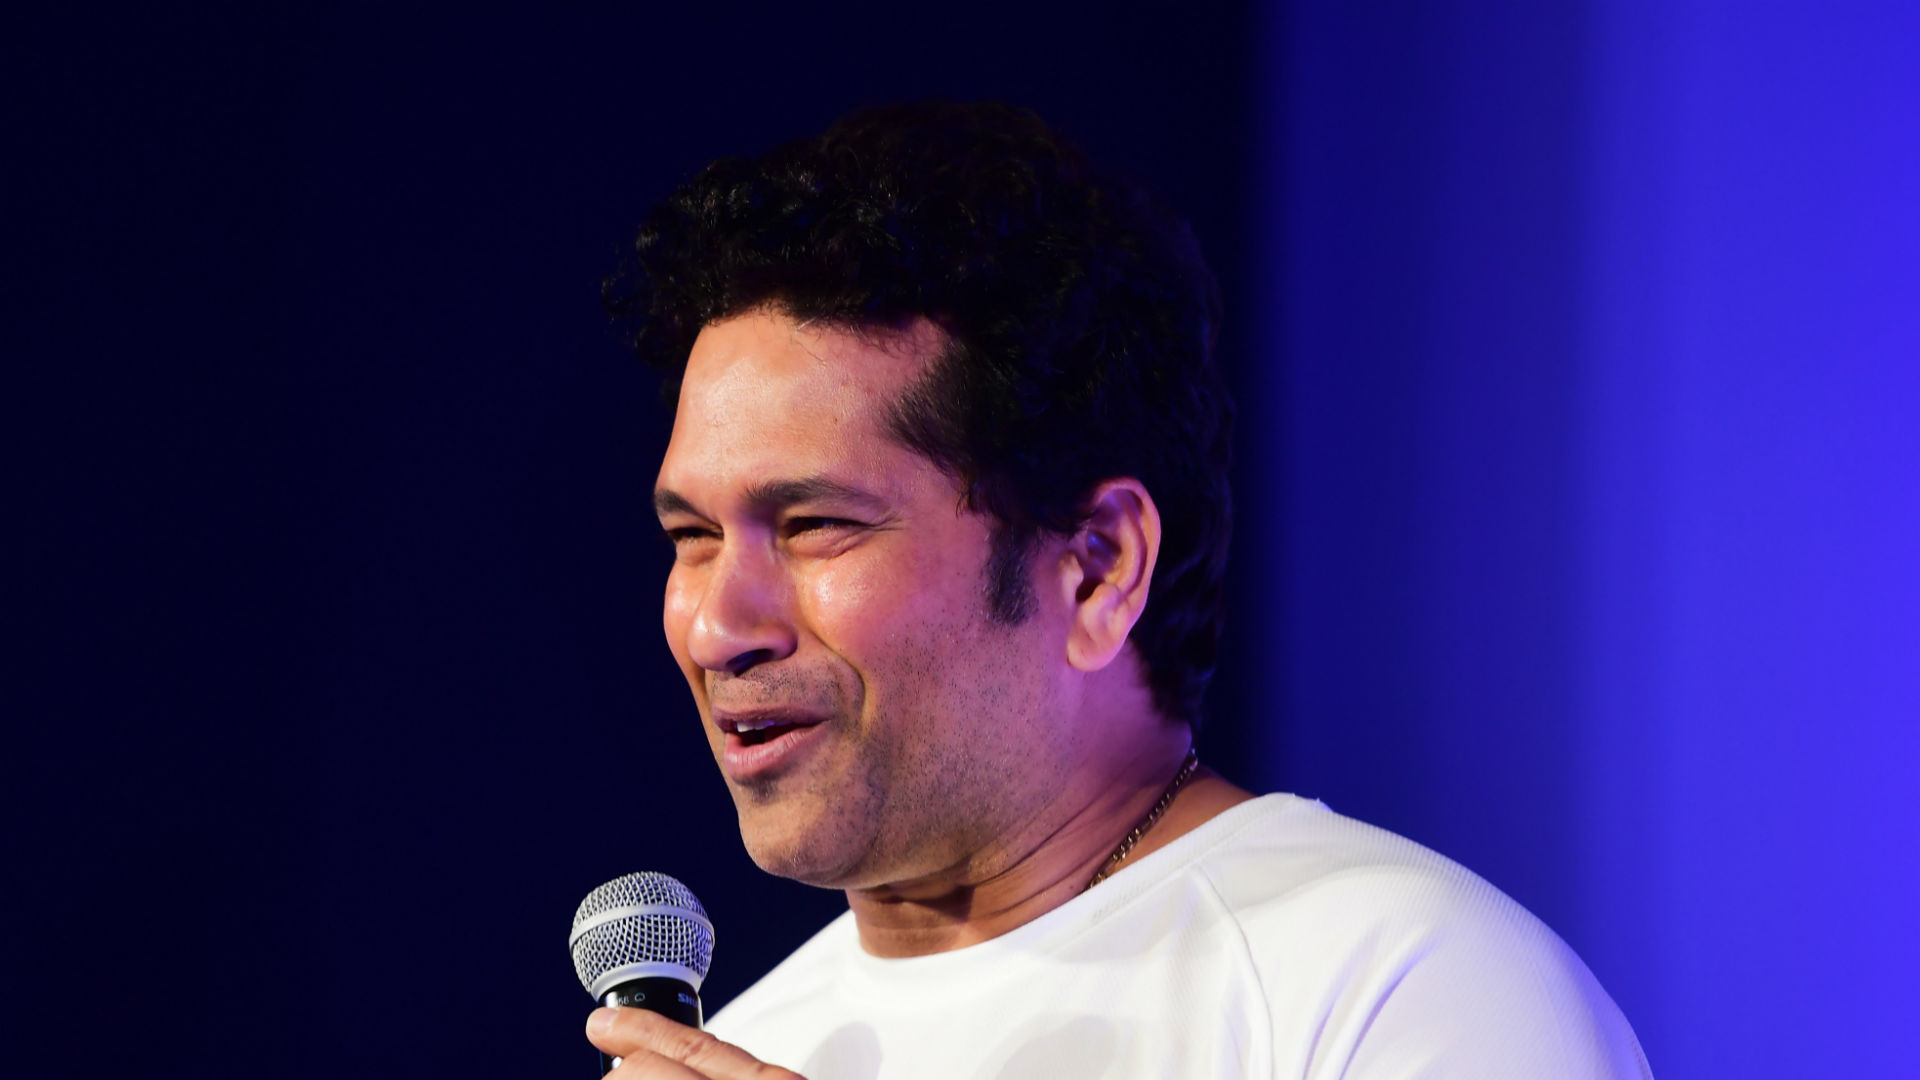 Sachin Tendulkar spent time in hospital on medical advice after testing positive for COVID-19, but he is now back home and resting up.